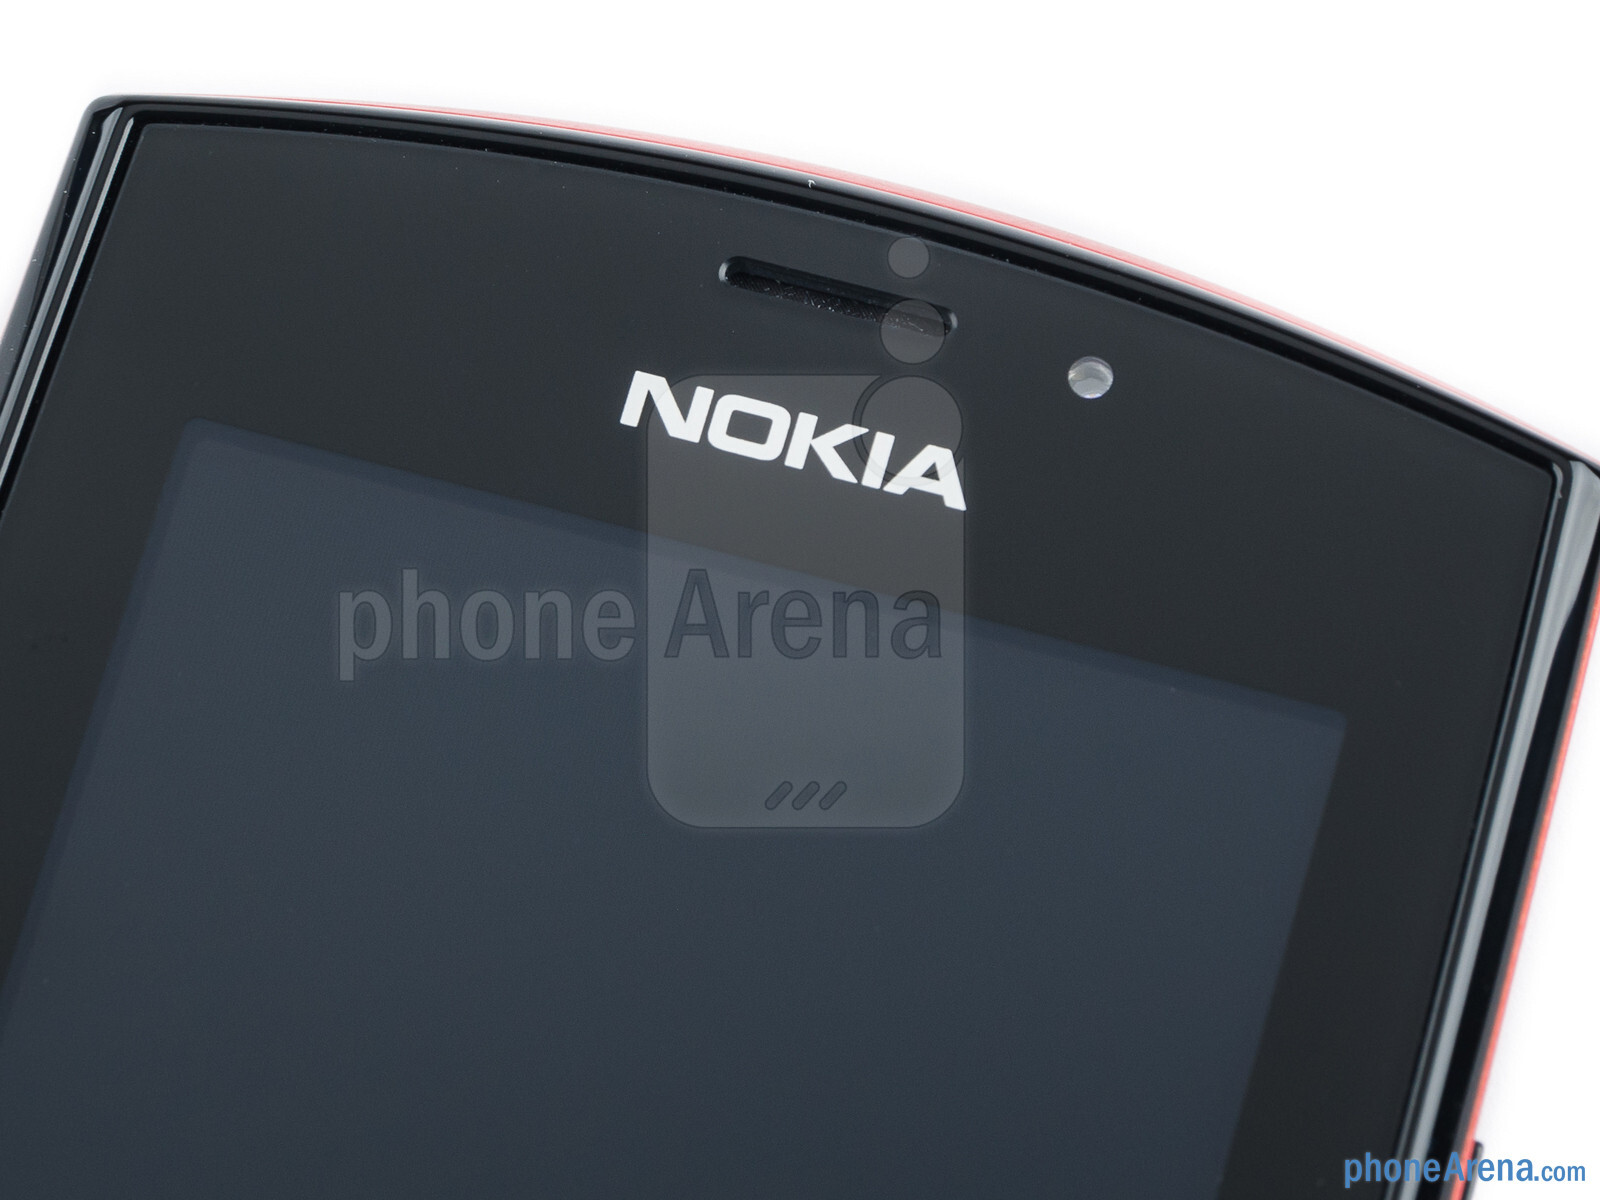 Nokia 300: specifications and reviews